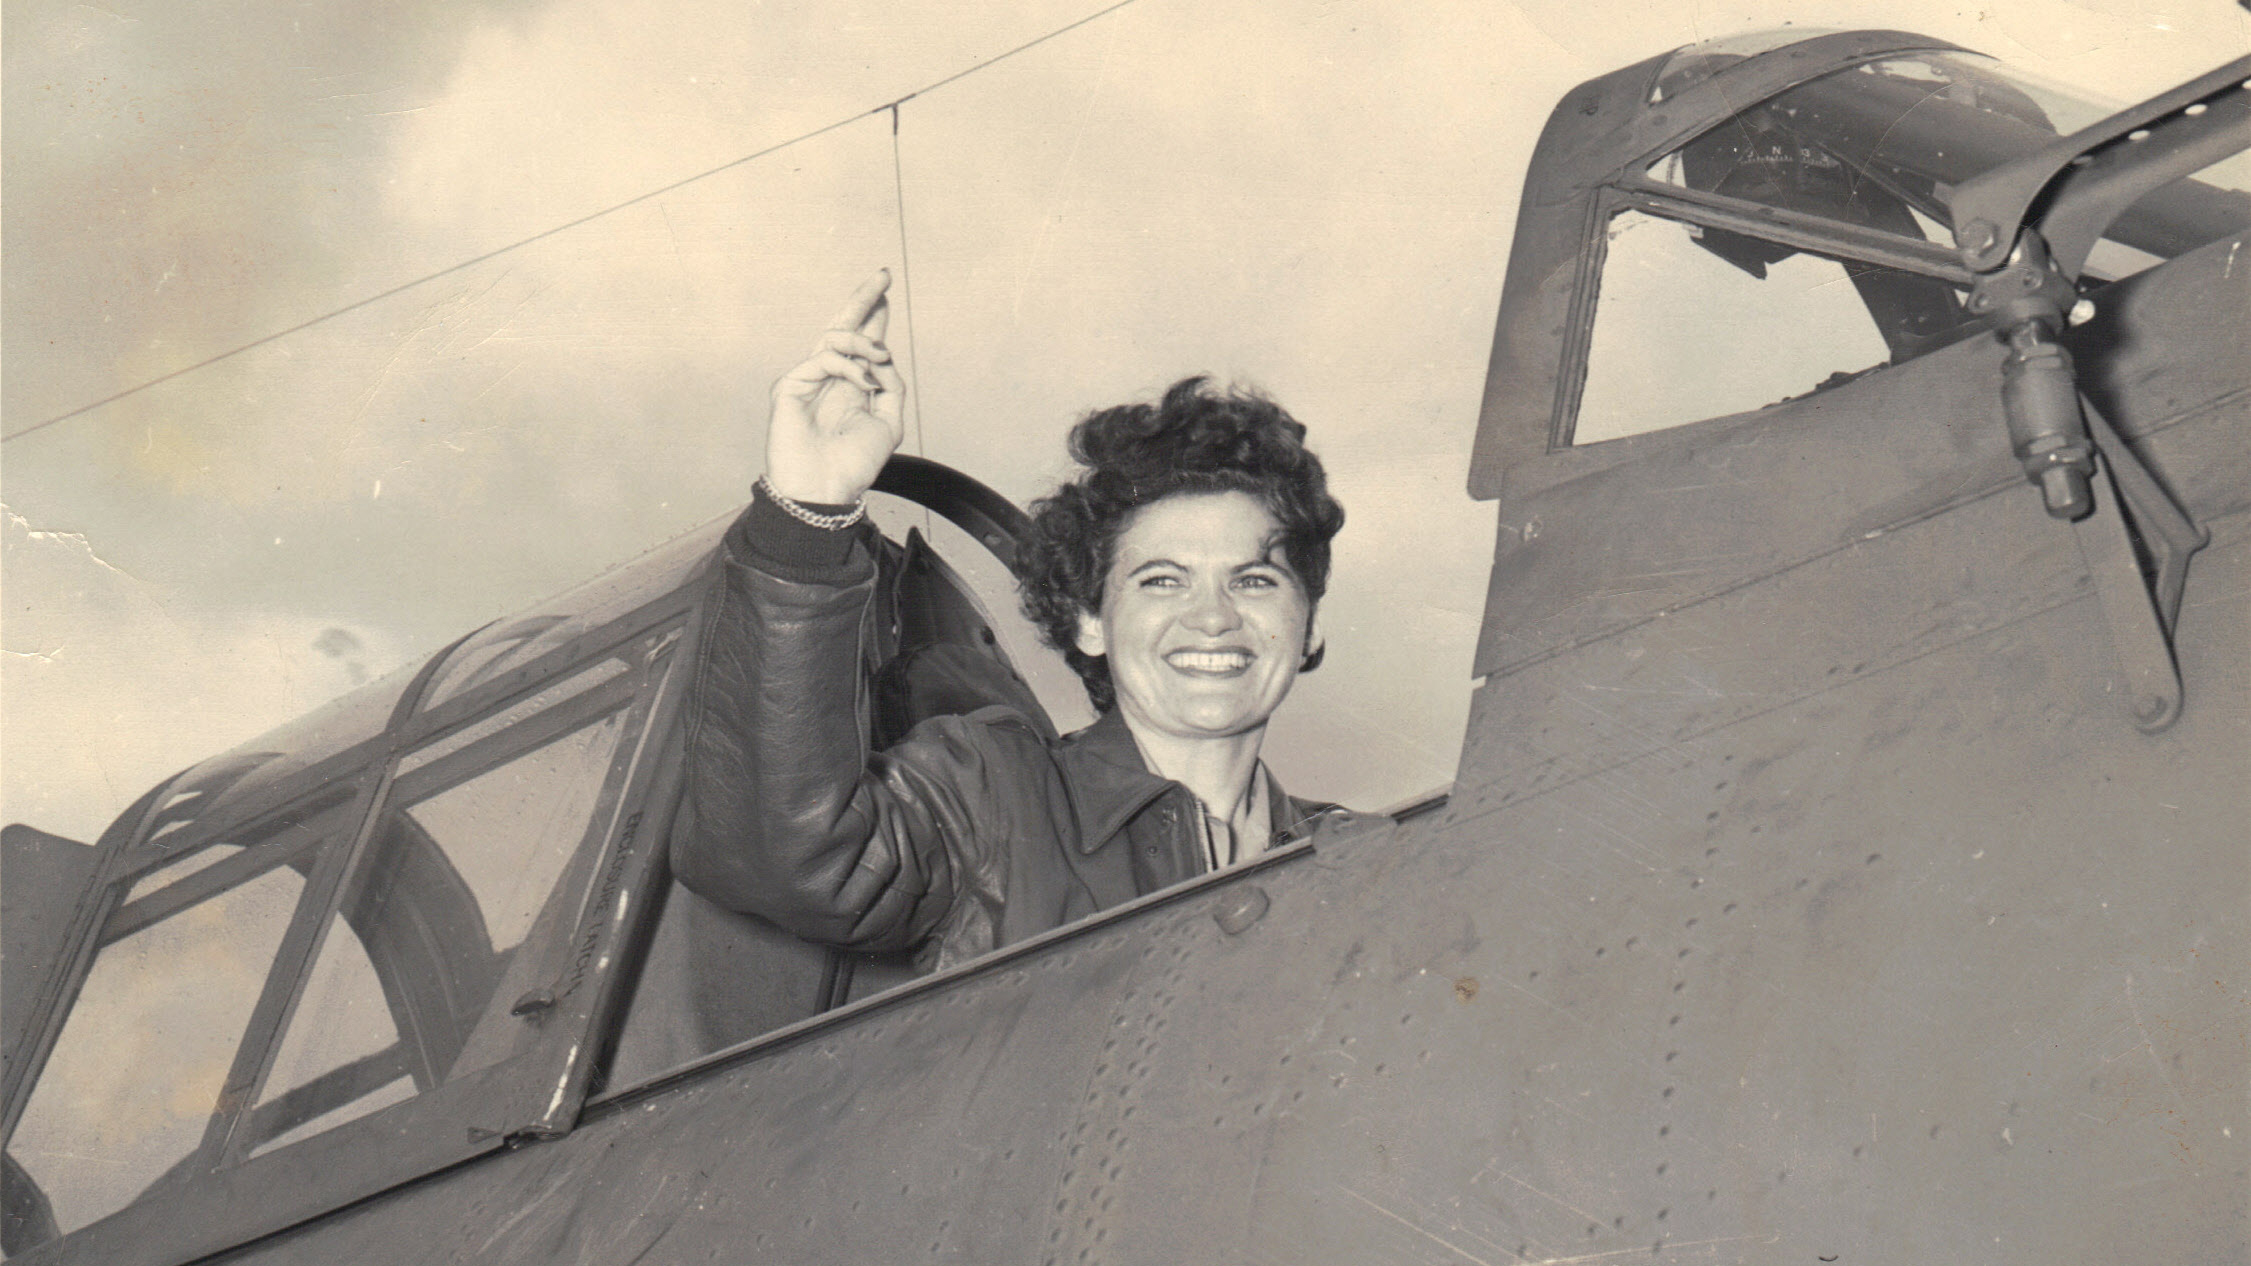 Ruth Helm lands a Douglas SBD Dauntless while serving as a WASP